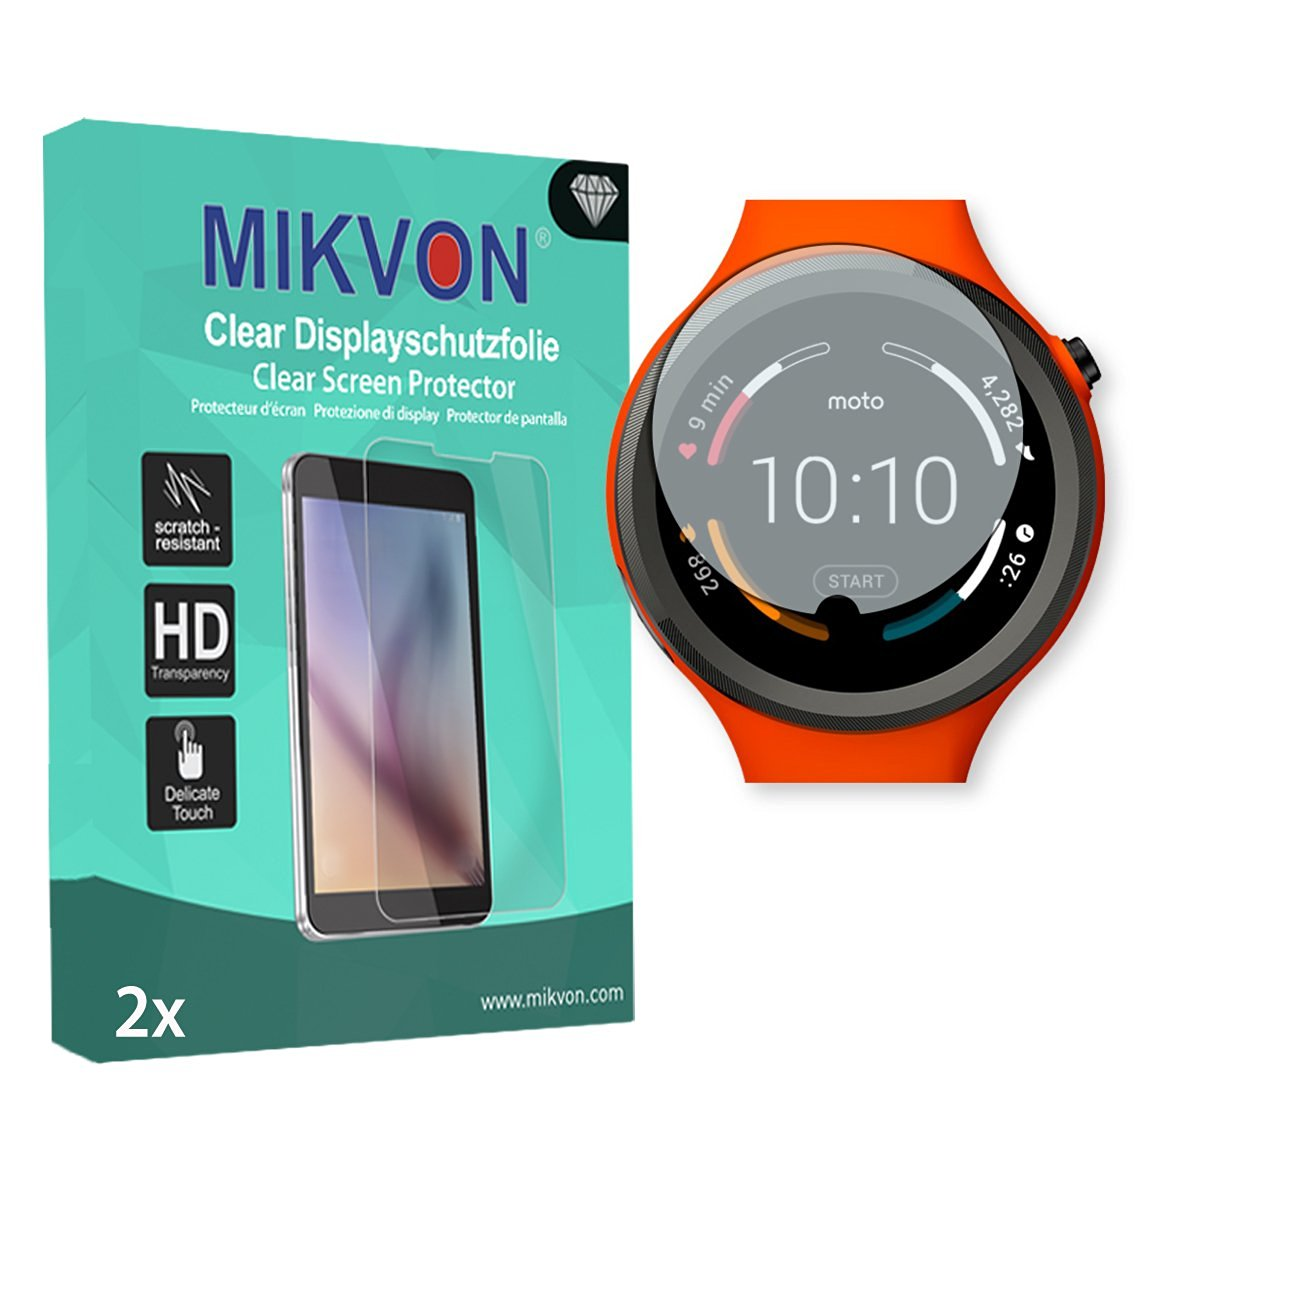 2x Mikvon Clear Screen Protector for Motorola Moto 360 Sport Smartwatch - Retail Package with accessories (intentionally smaller than the display due to its curved surface)